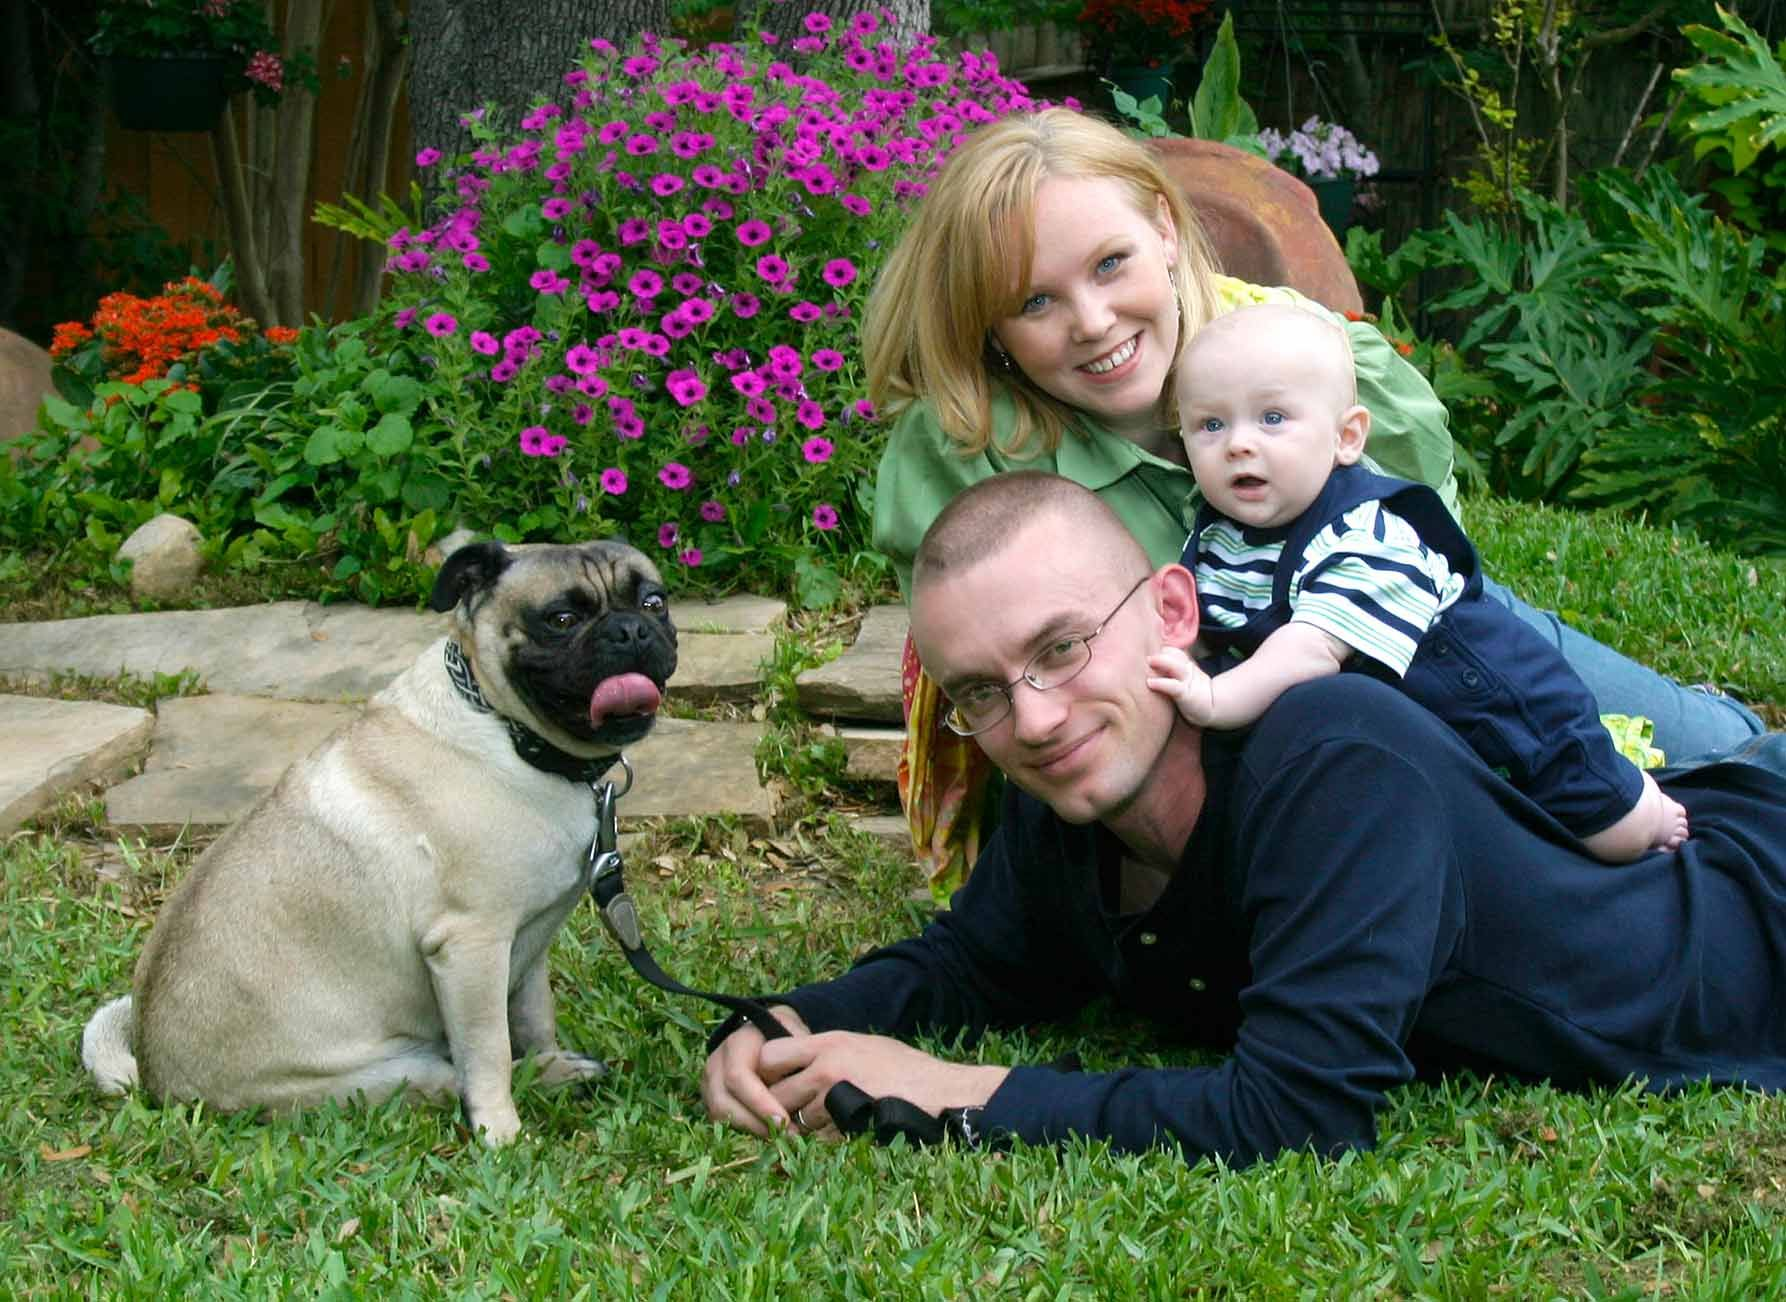 Family Portraits With Dad Mom Baby And Their Pet Dog Pets Can Make An Interesting Addition To A Photography Session